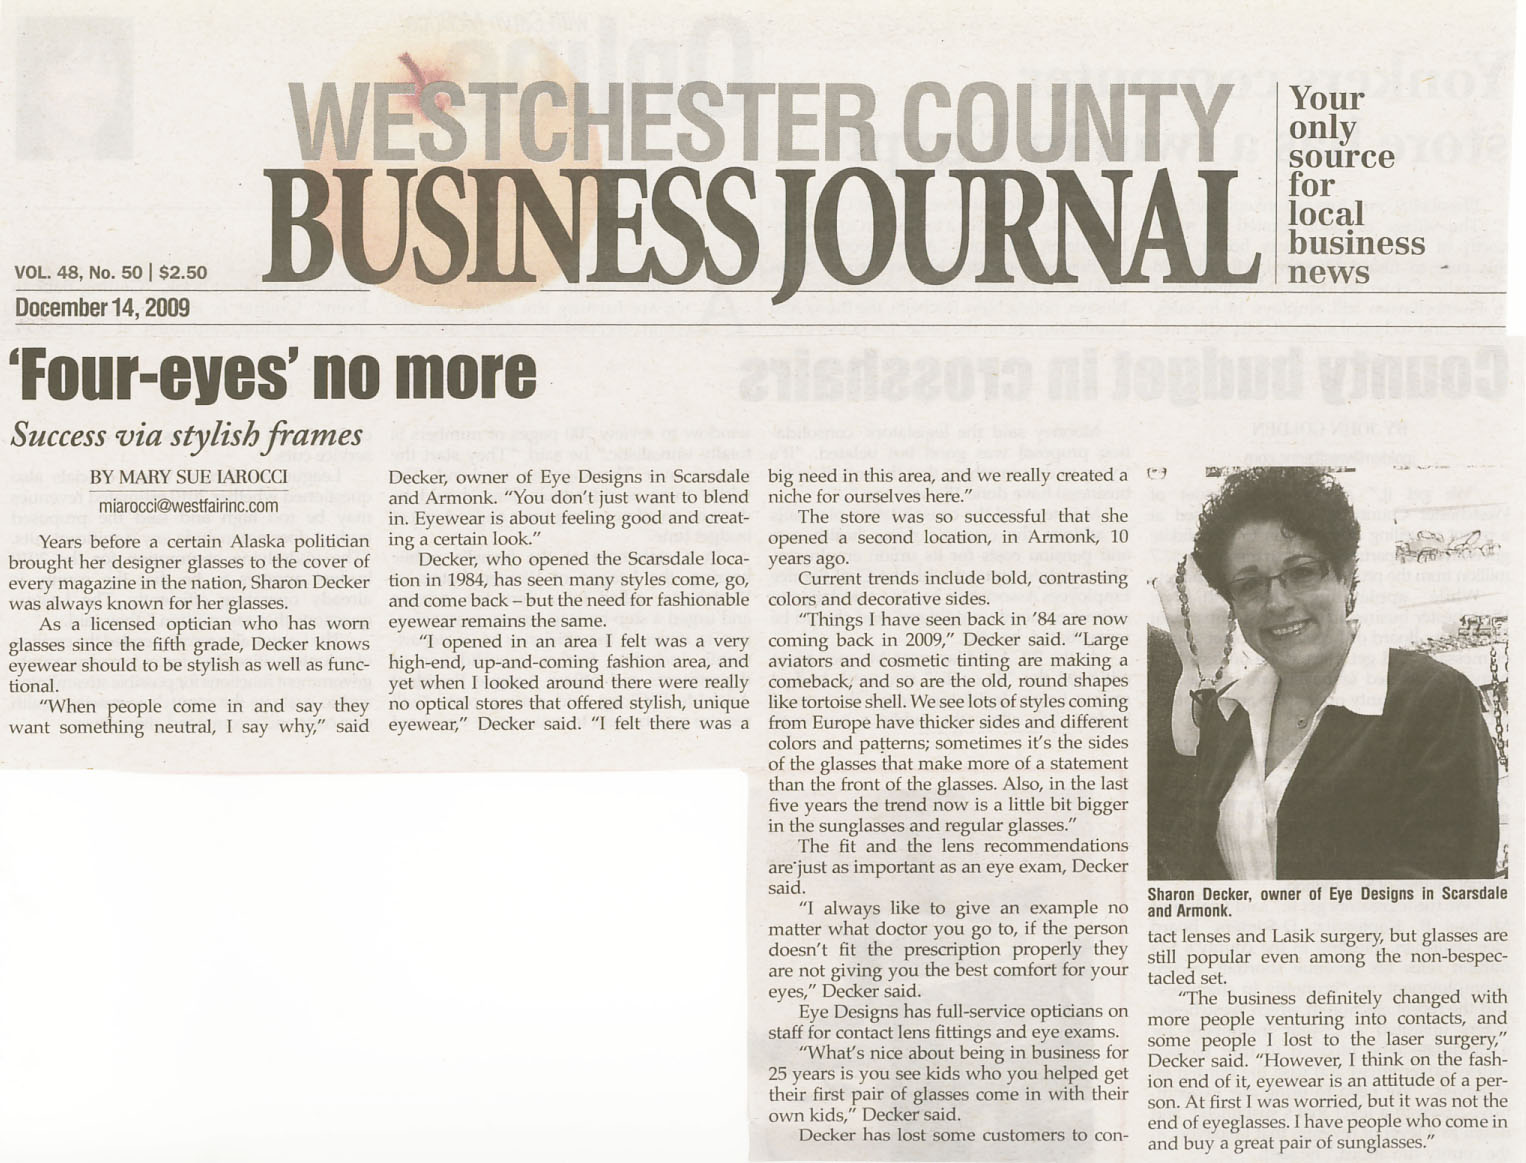 Getting your company featured in the newspaper is more easily accomplished when you have a good story to tell. Sharon Decker was able to address the changes in her industry over a 25 year period which garnered a half page feature story.